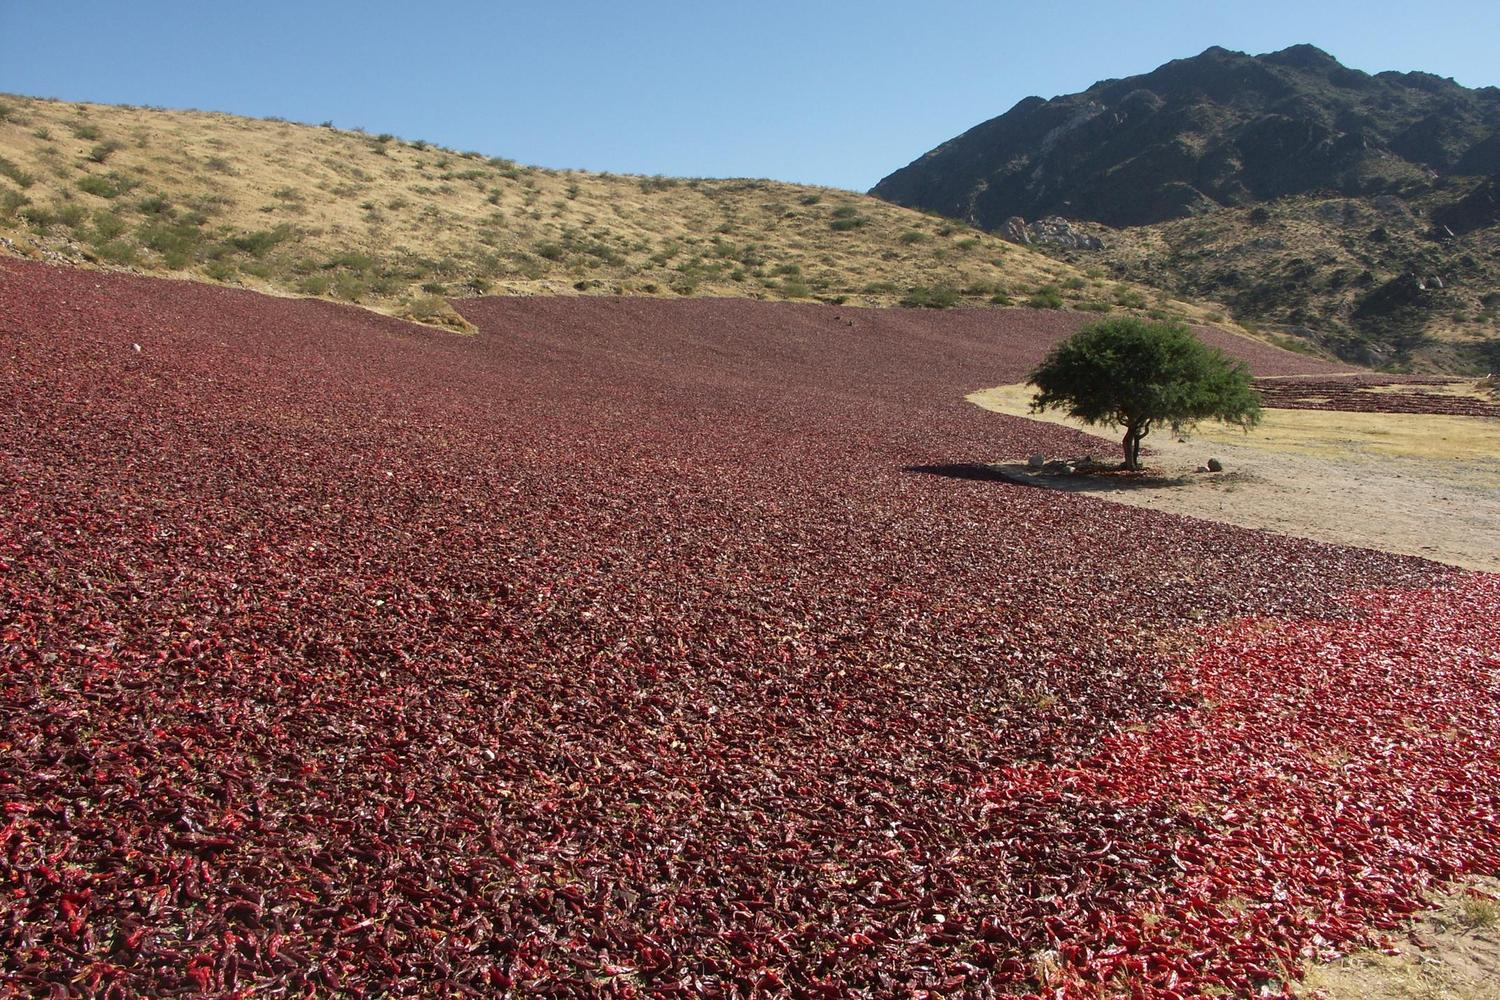 Drying peppers in Argentina's north west region